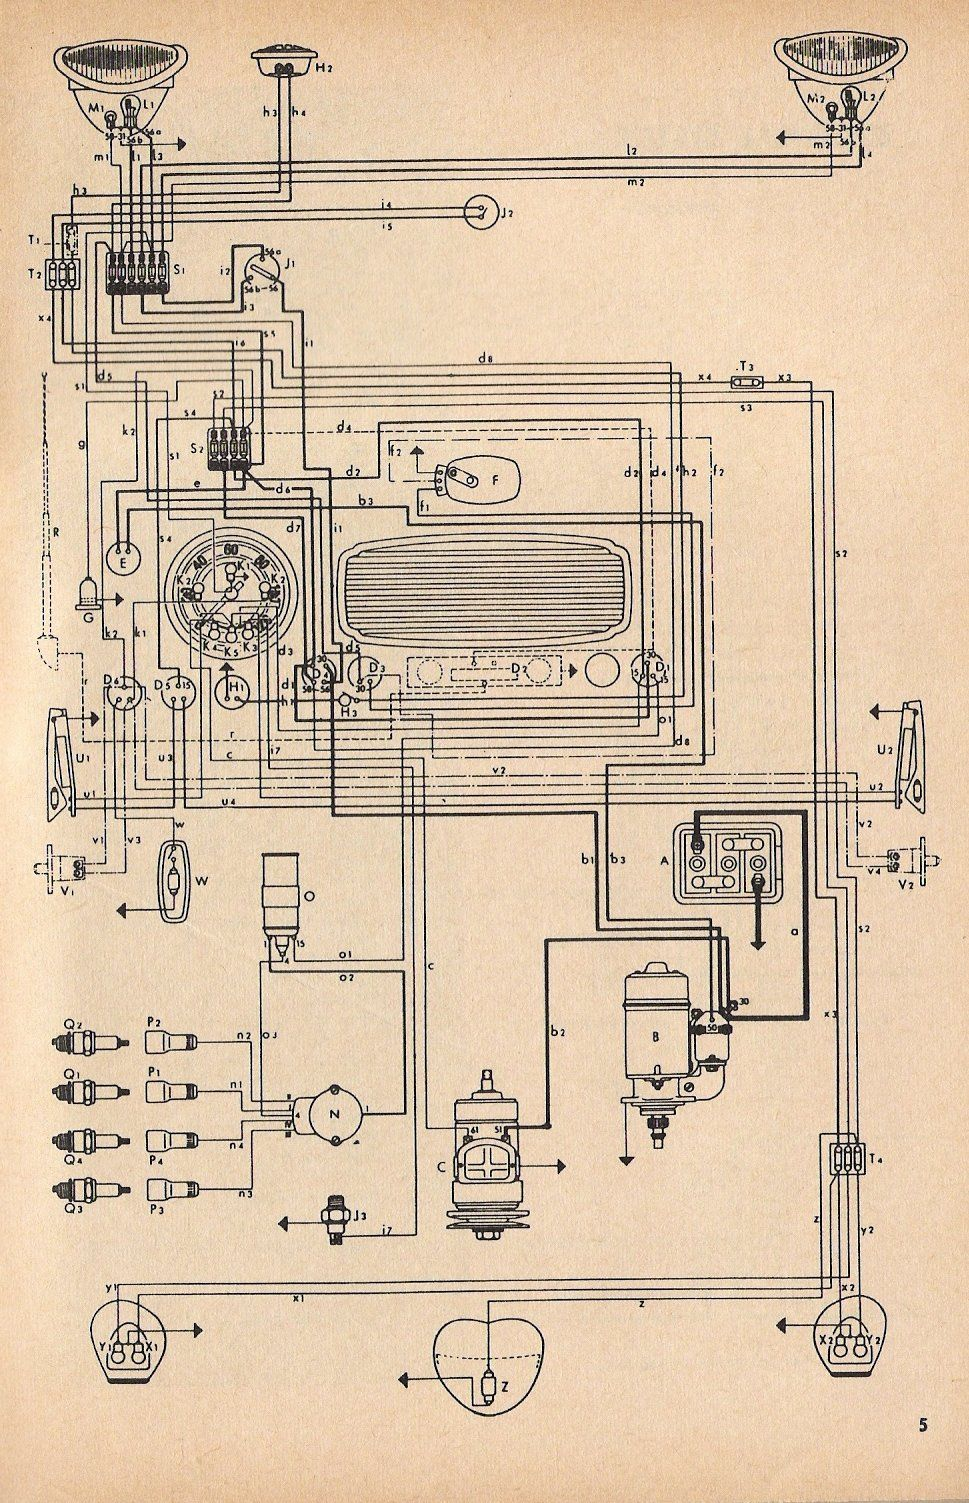 73aa9ad606b8bf00f62fd44f769ec35c wiring diagram vw beetle sedan and convertible 1961 1965 vw 1960 vw bus wiring diagram at fashall.co